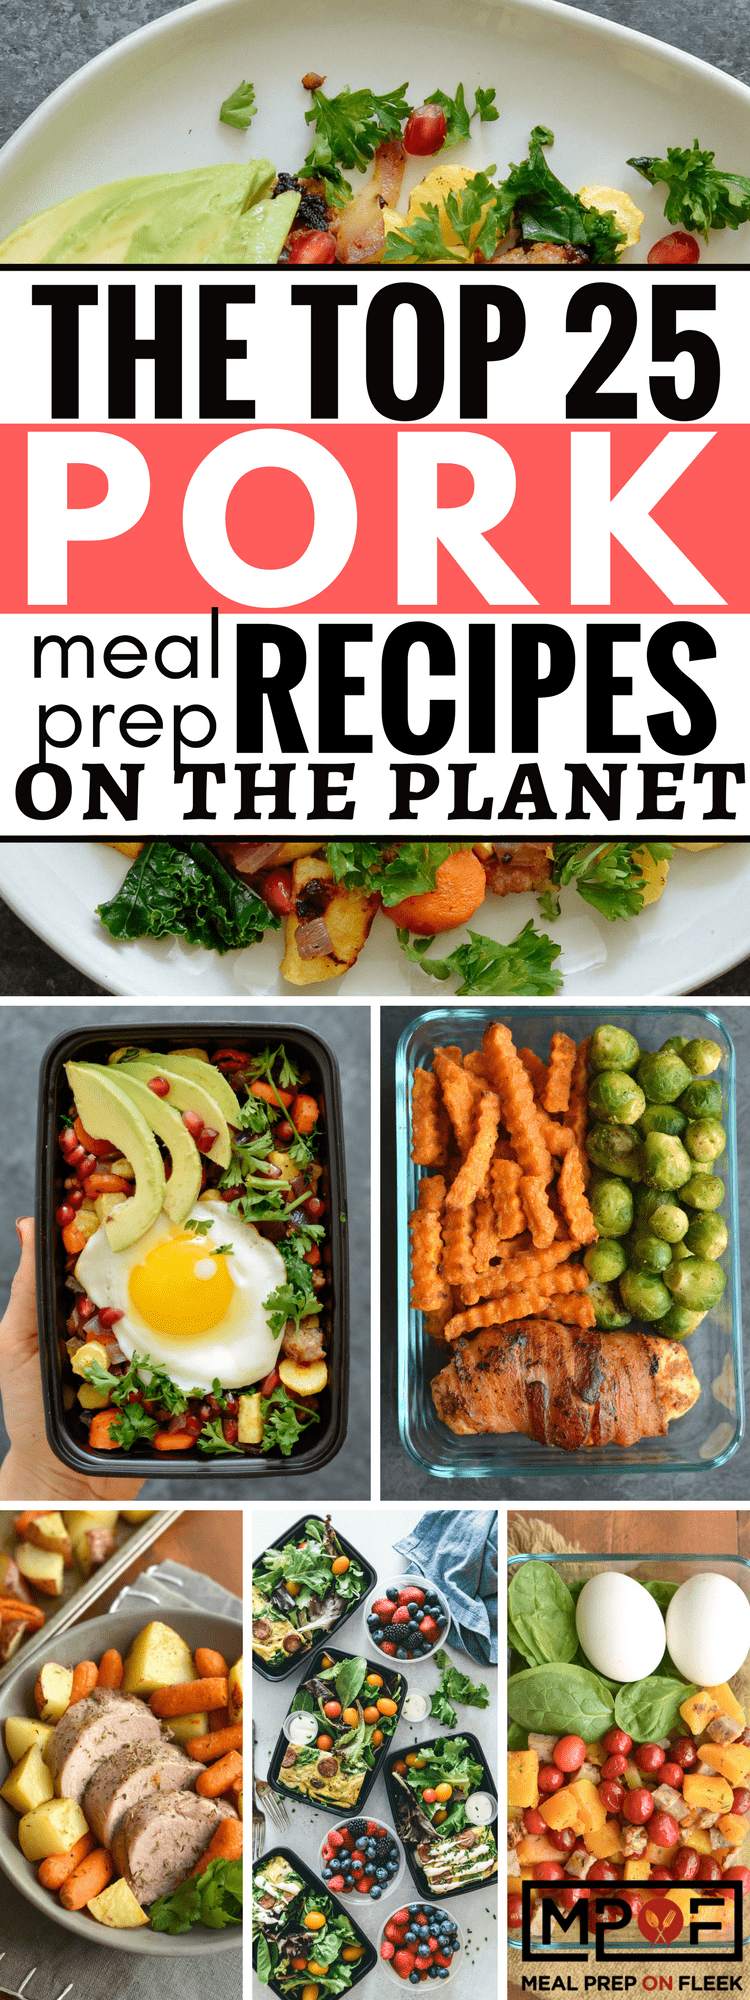 The Top 25 Pork Meal Prep Recipes On The Planet